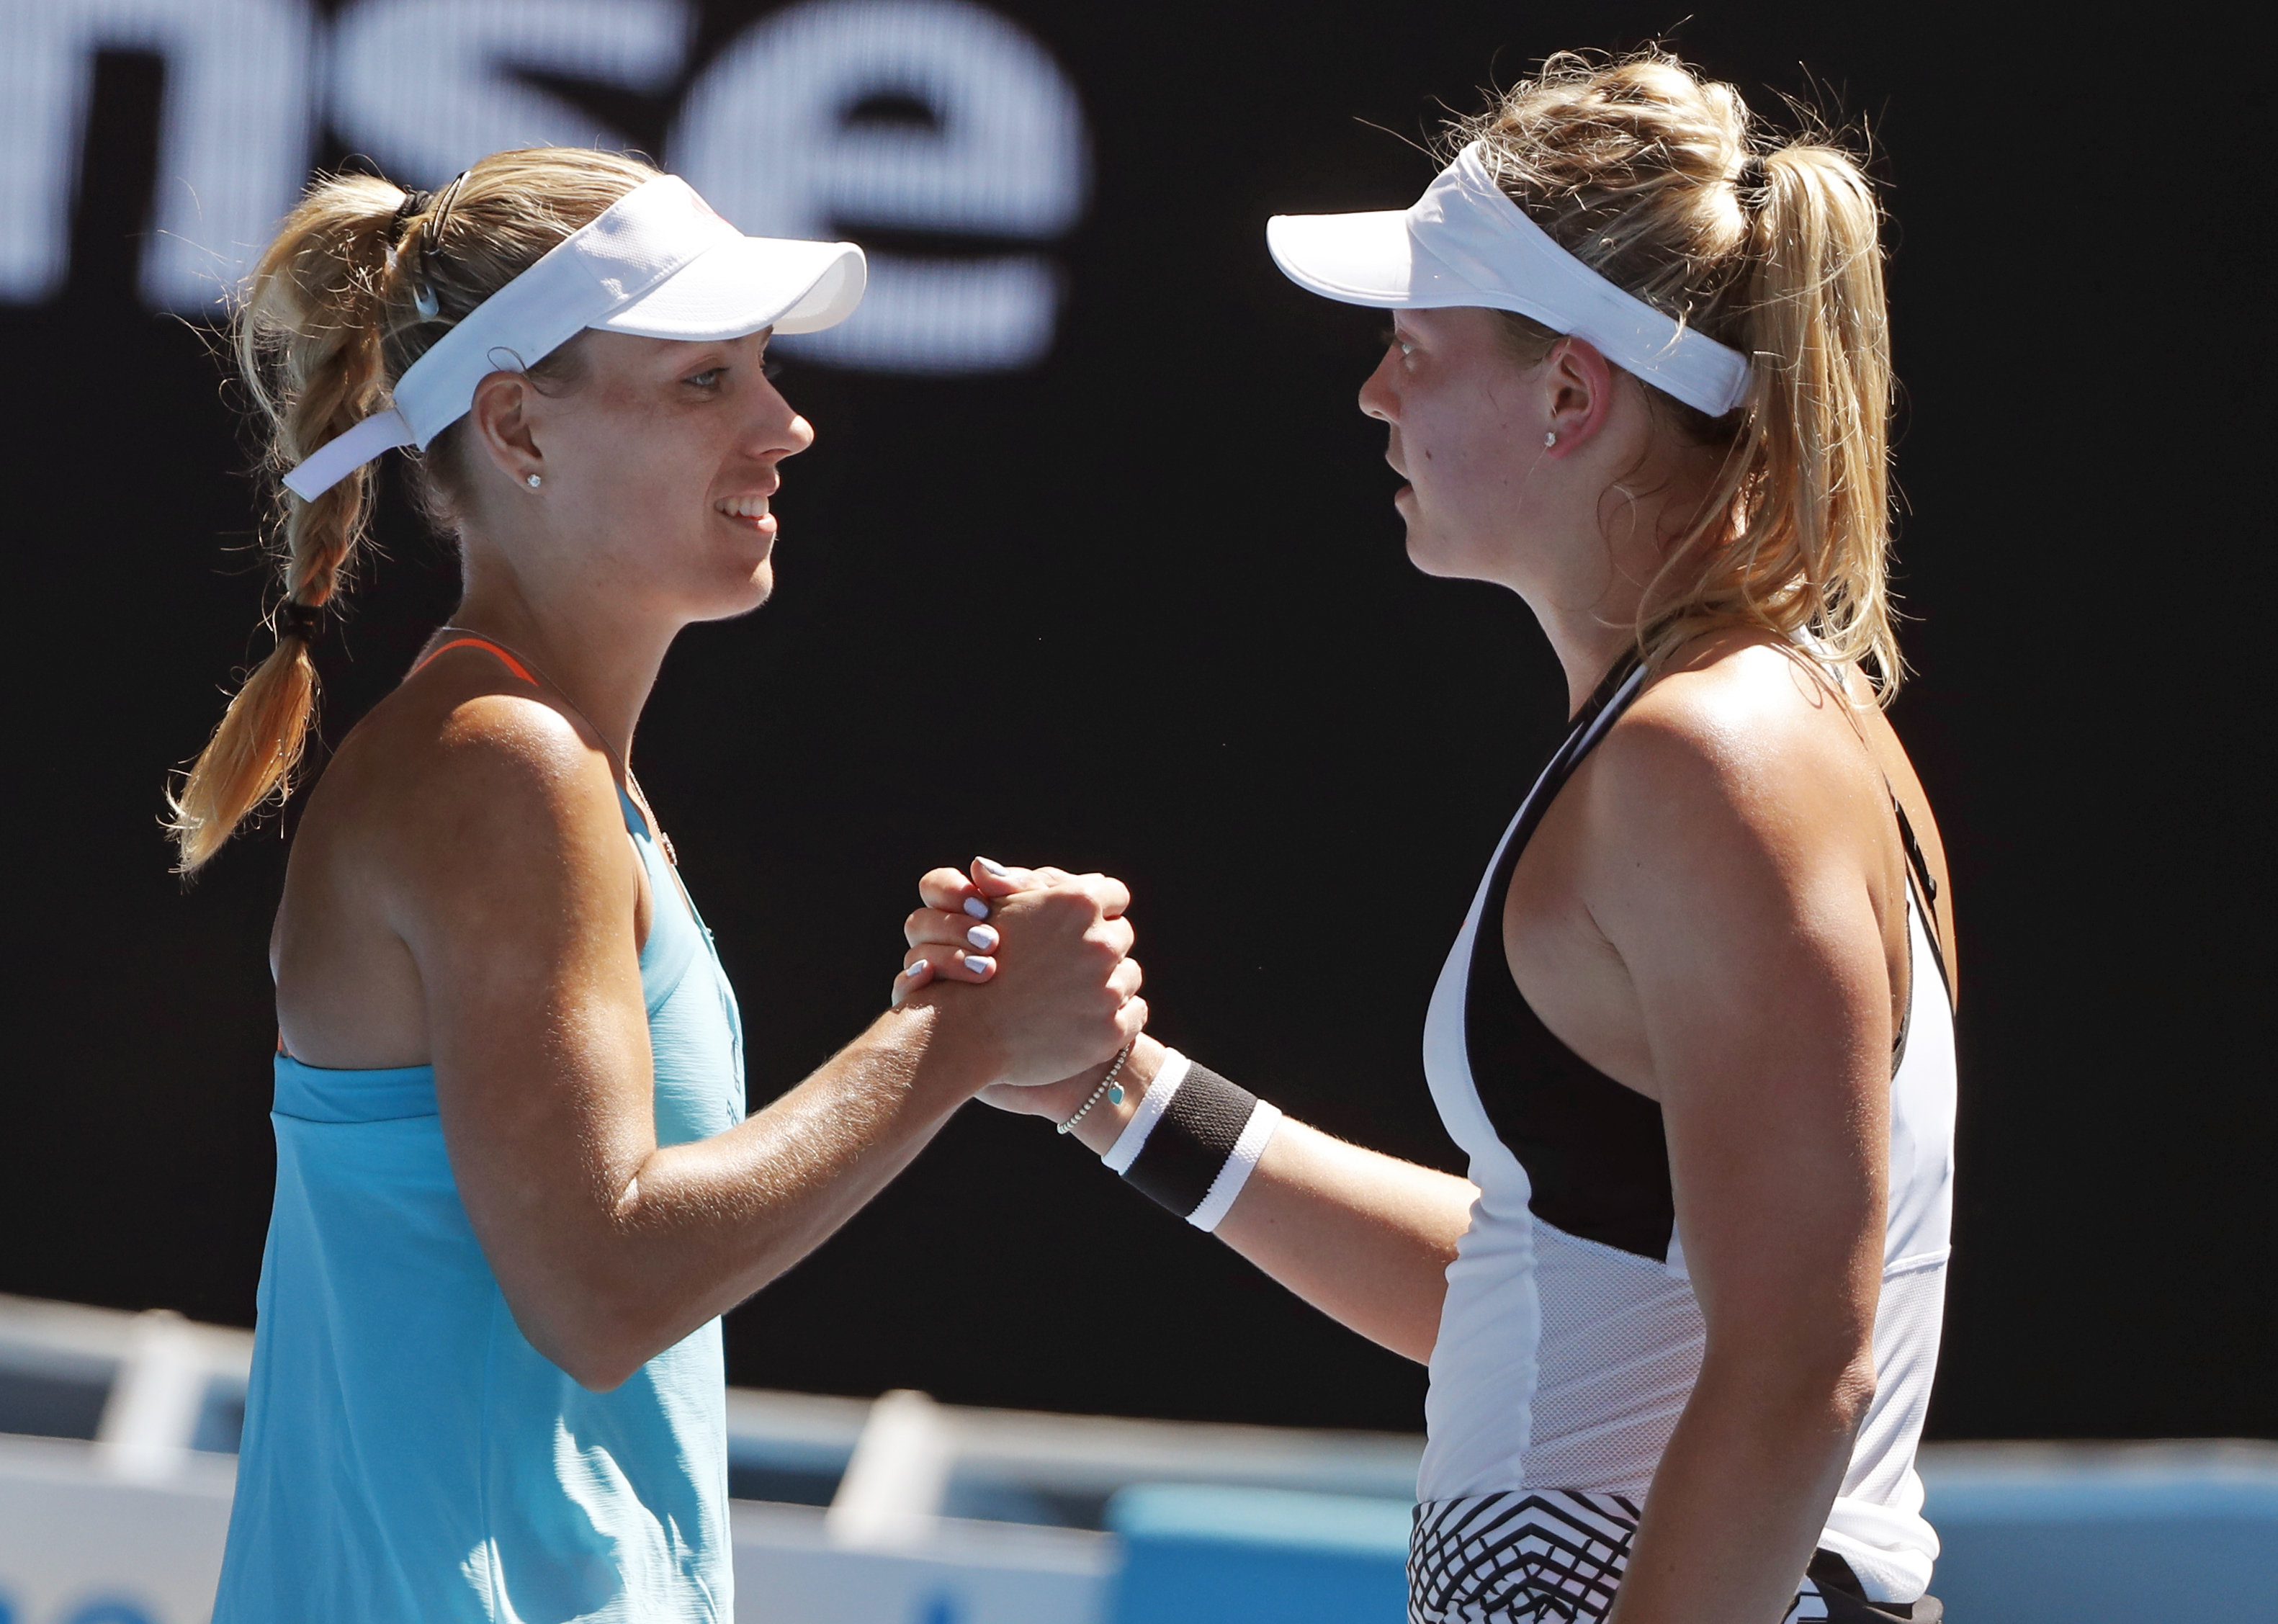 Germany's Angelique Kerber, left, is congratulated by compatriot Carina Witthoeft after wining their second round match at the Australian Open tennis championships in Melbourne, Australia, Wednesday, Jan. 18, 2017. (AP Photo/Dita Alangkara)